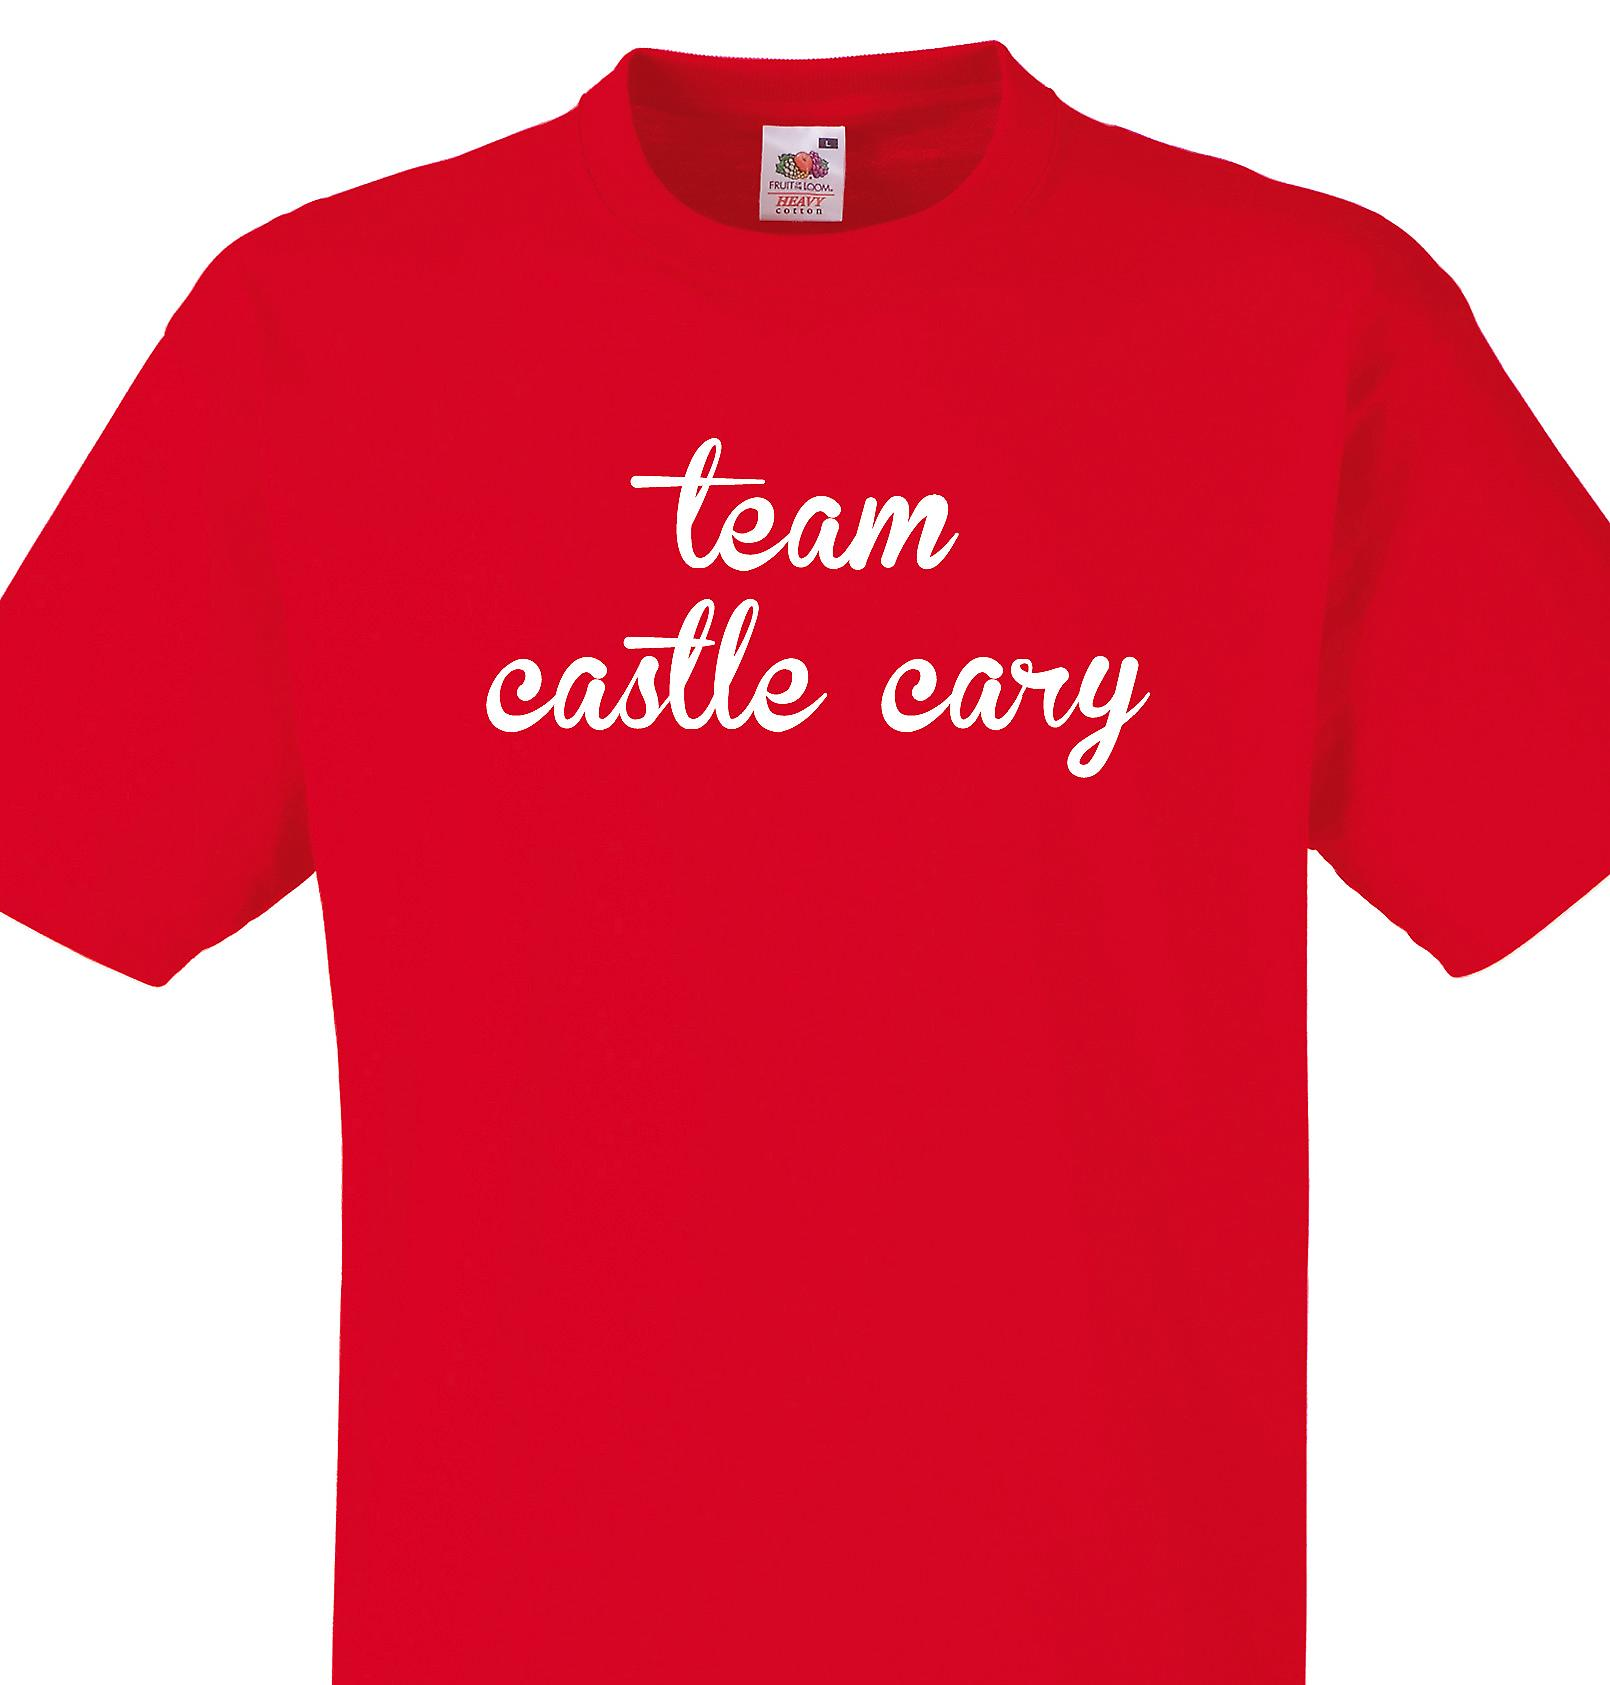 Team Castle cary Red T shirt